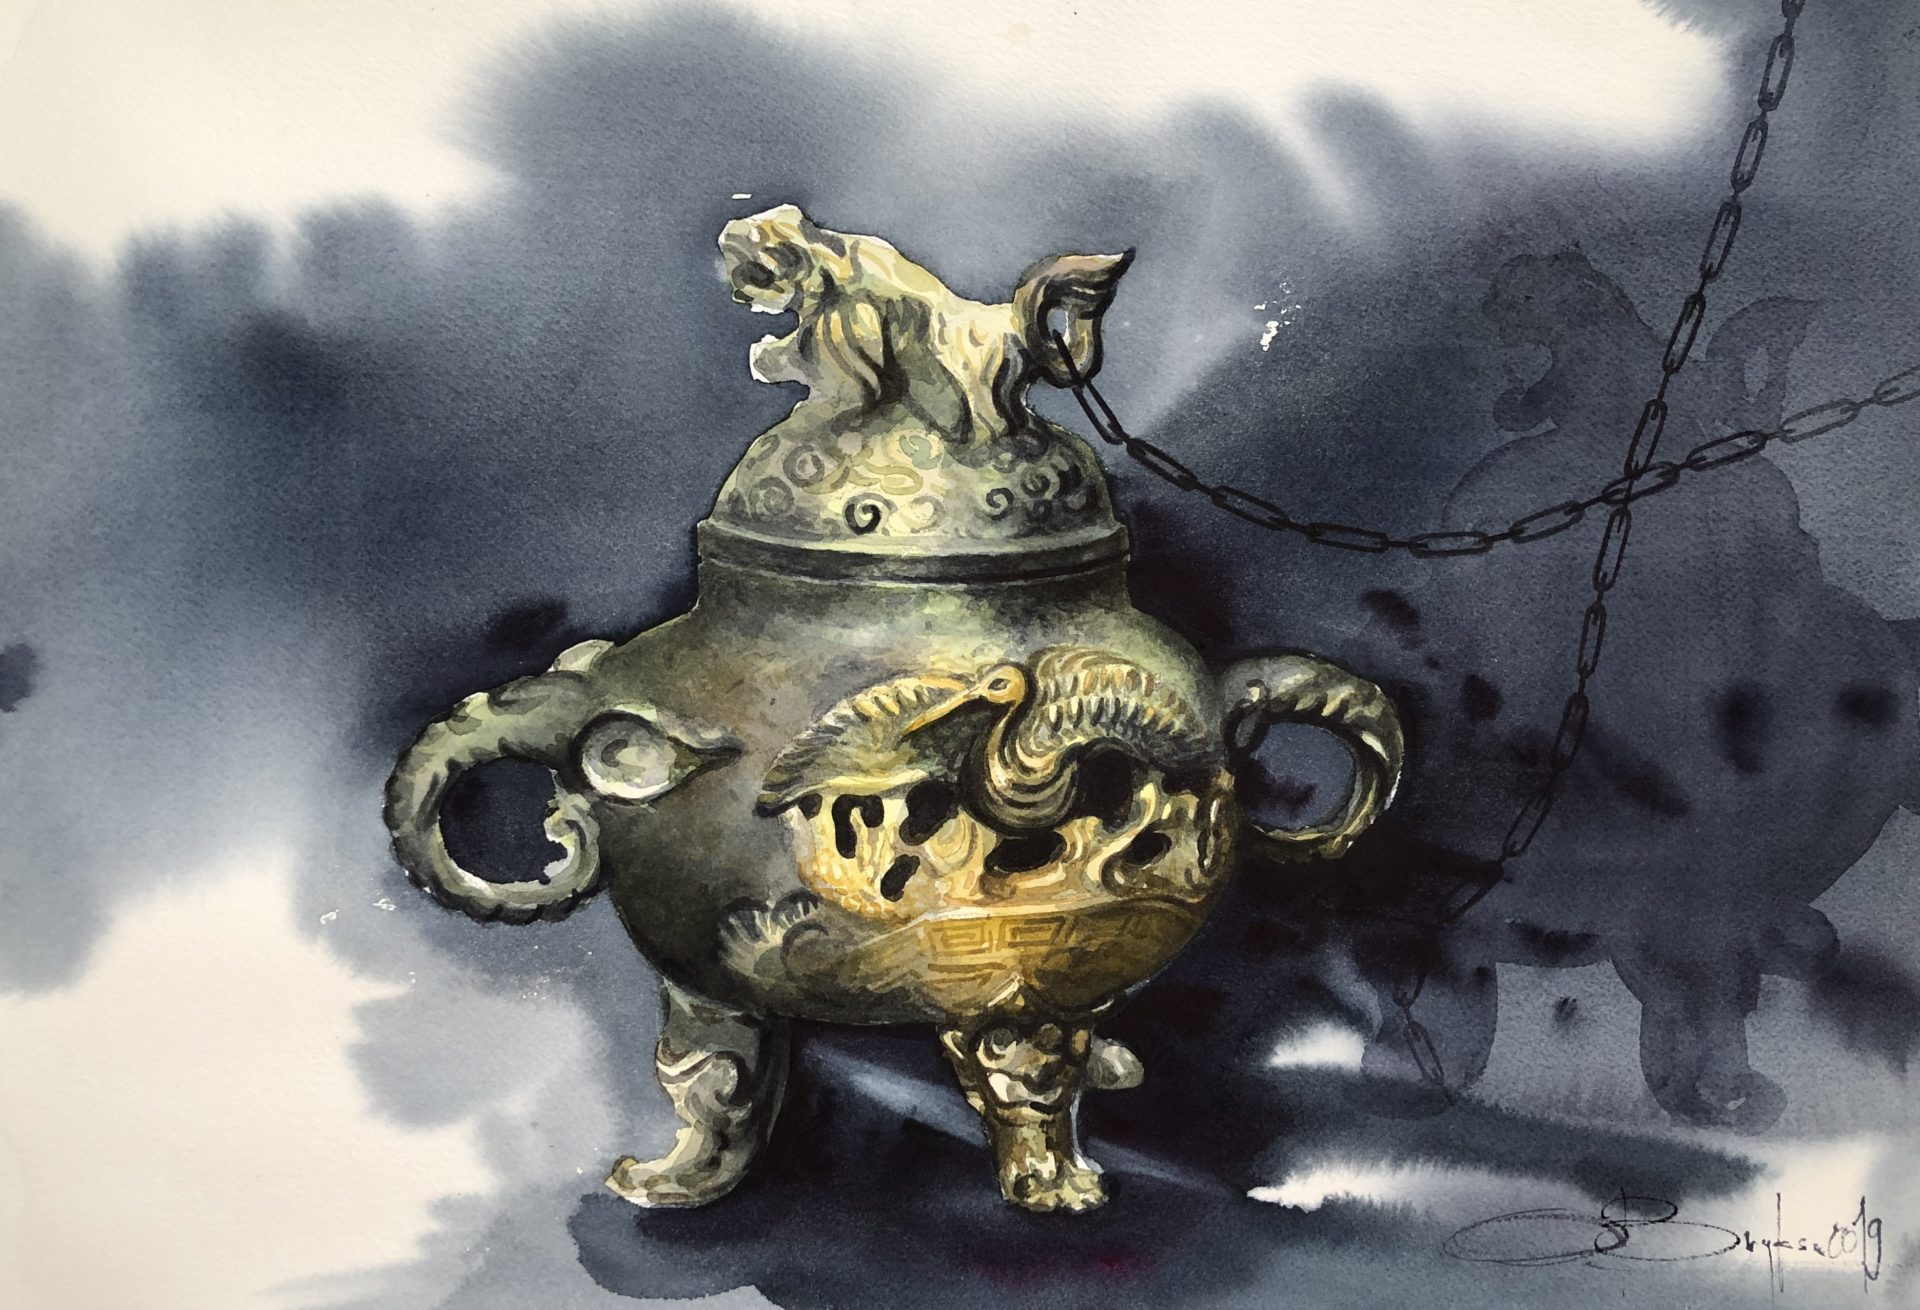 The Kettle From Siem Reap Market,Watercolour, 46x61cm, Konvice z trhu Siem Reap